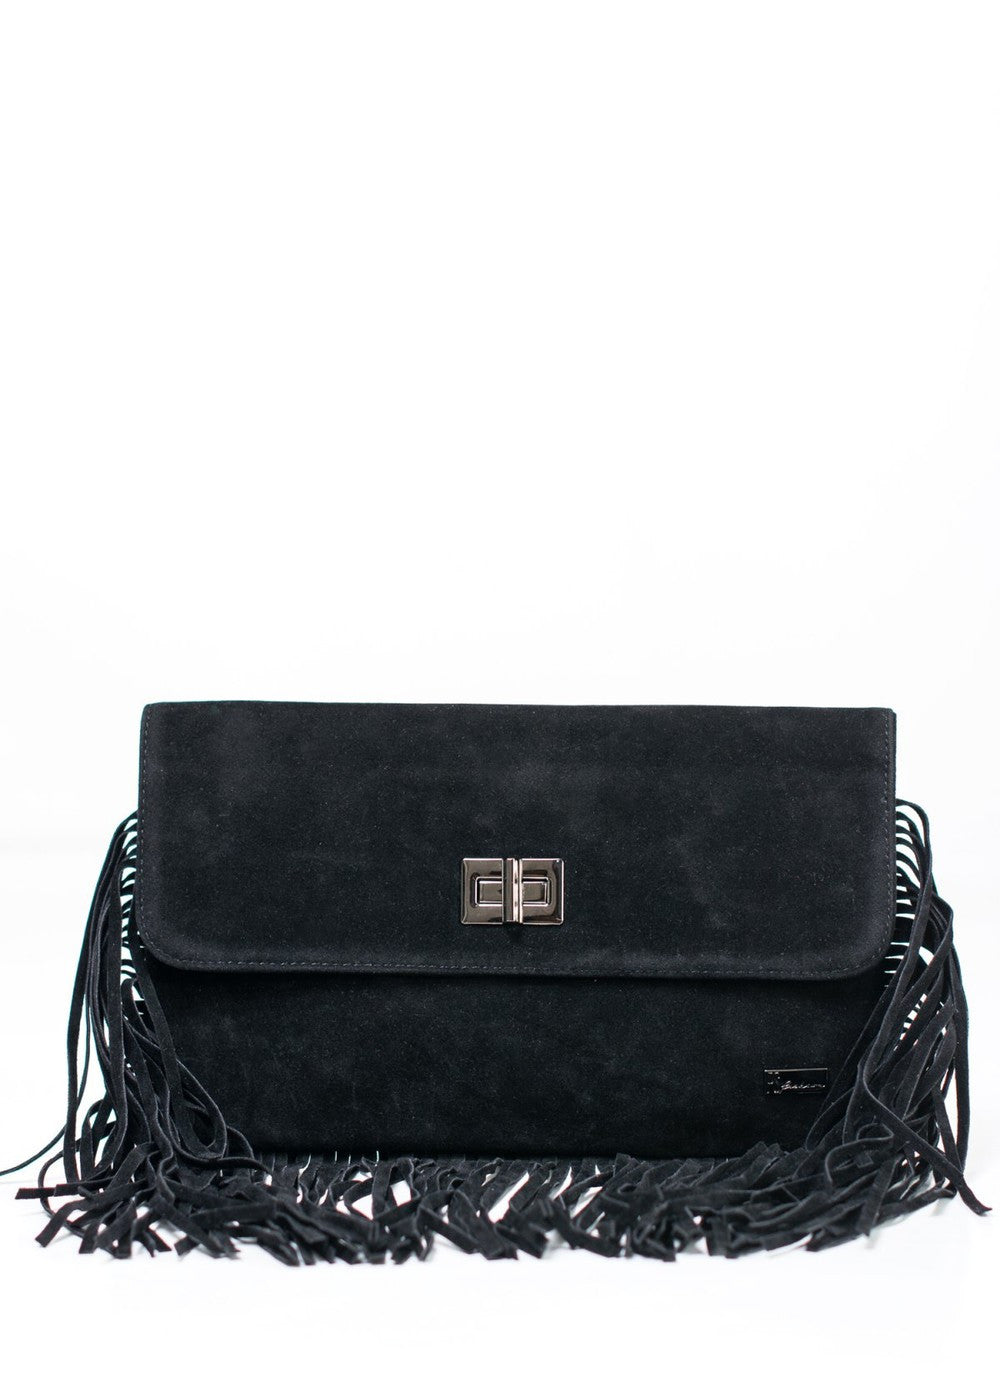 Cross Body Black Bag